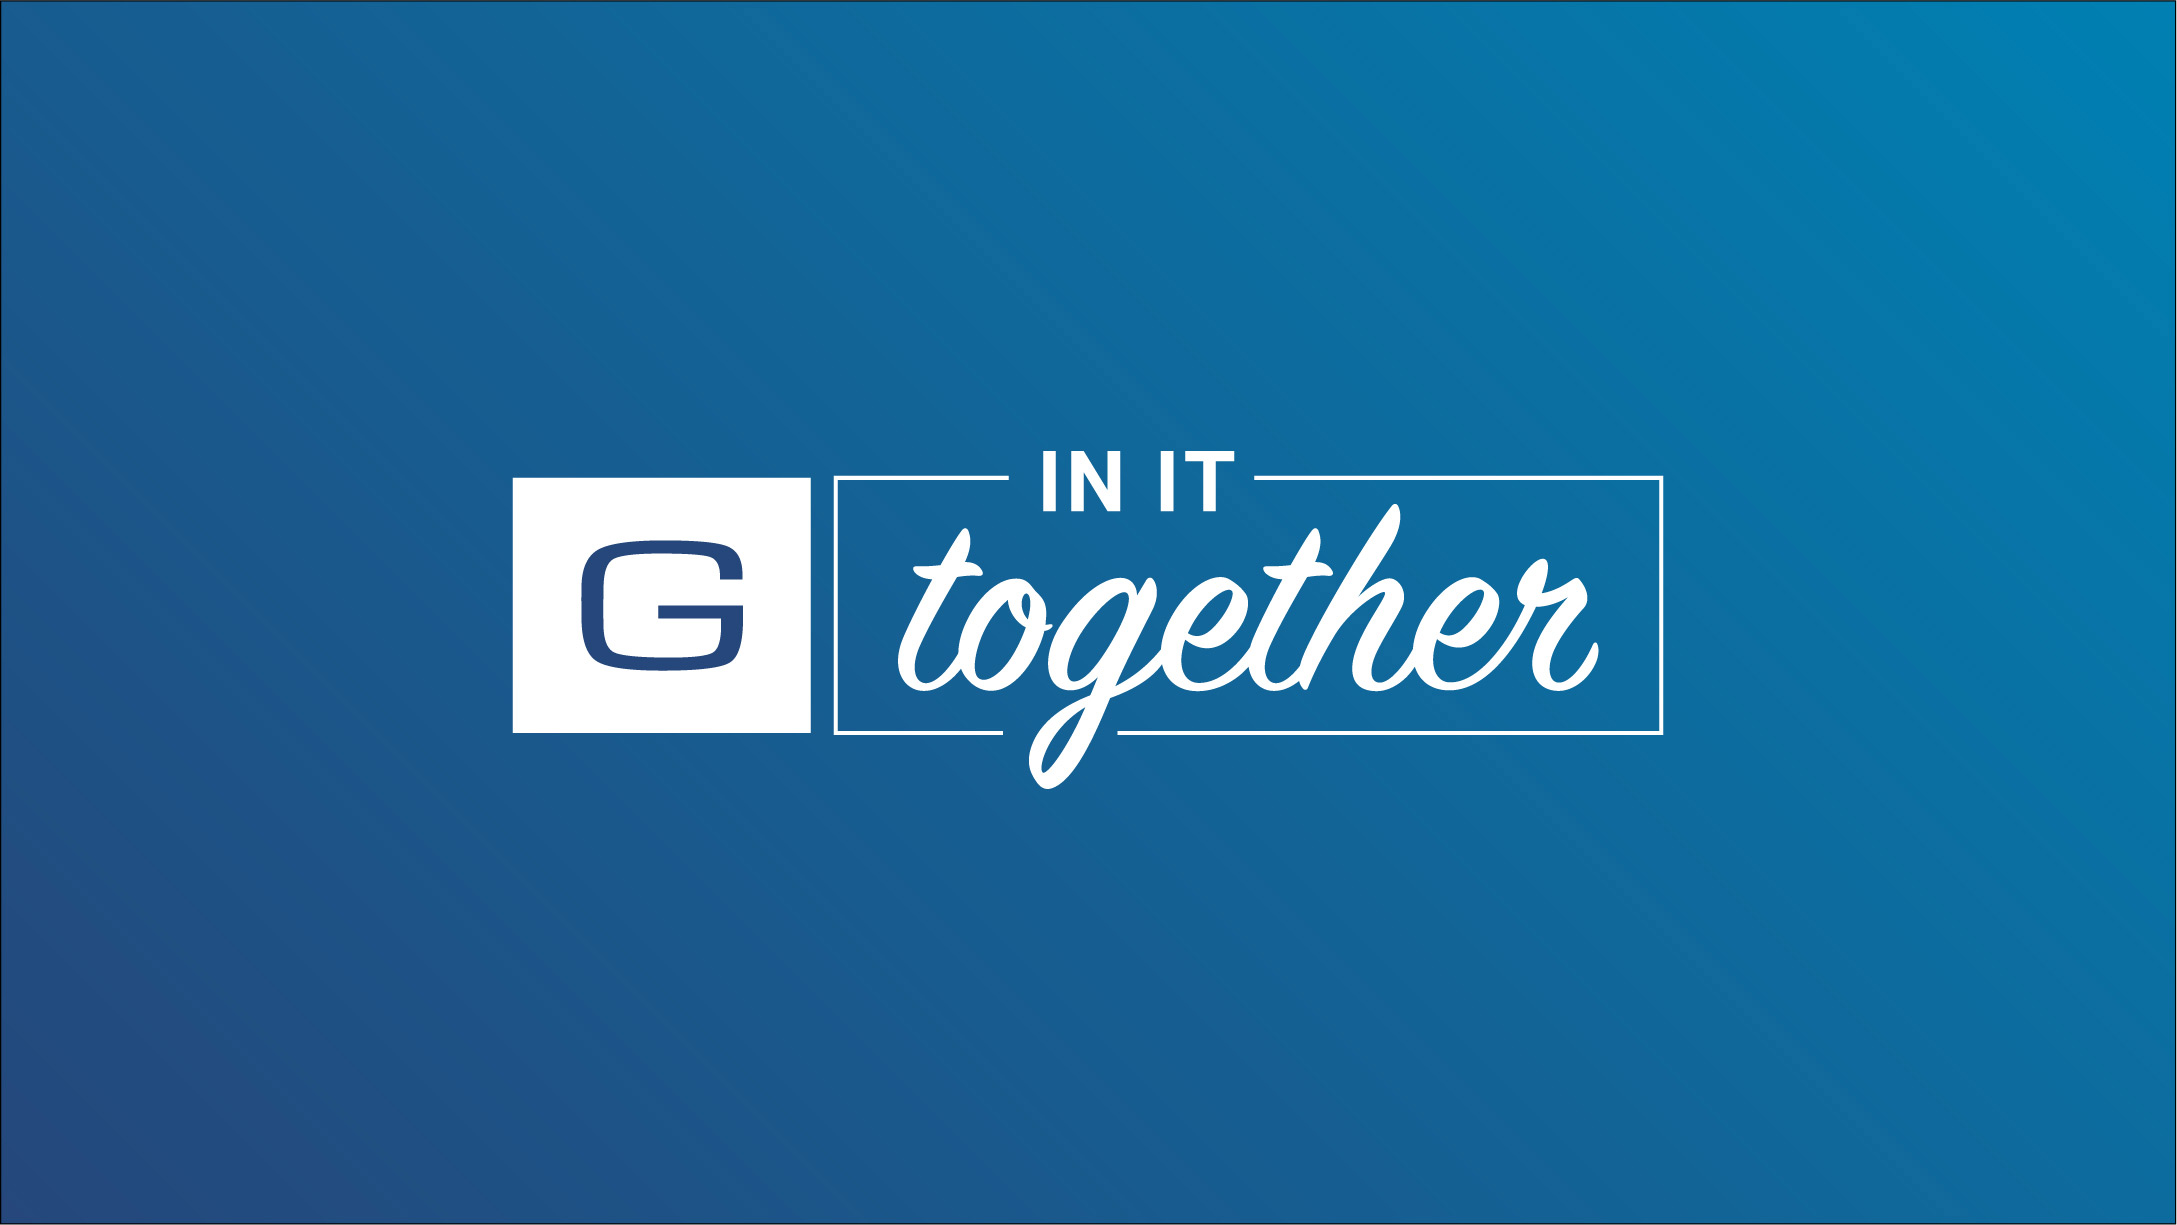 Geotab in it together logo on blue background